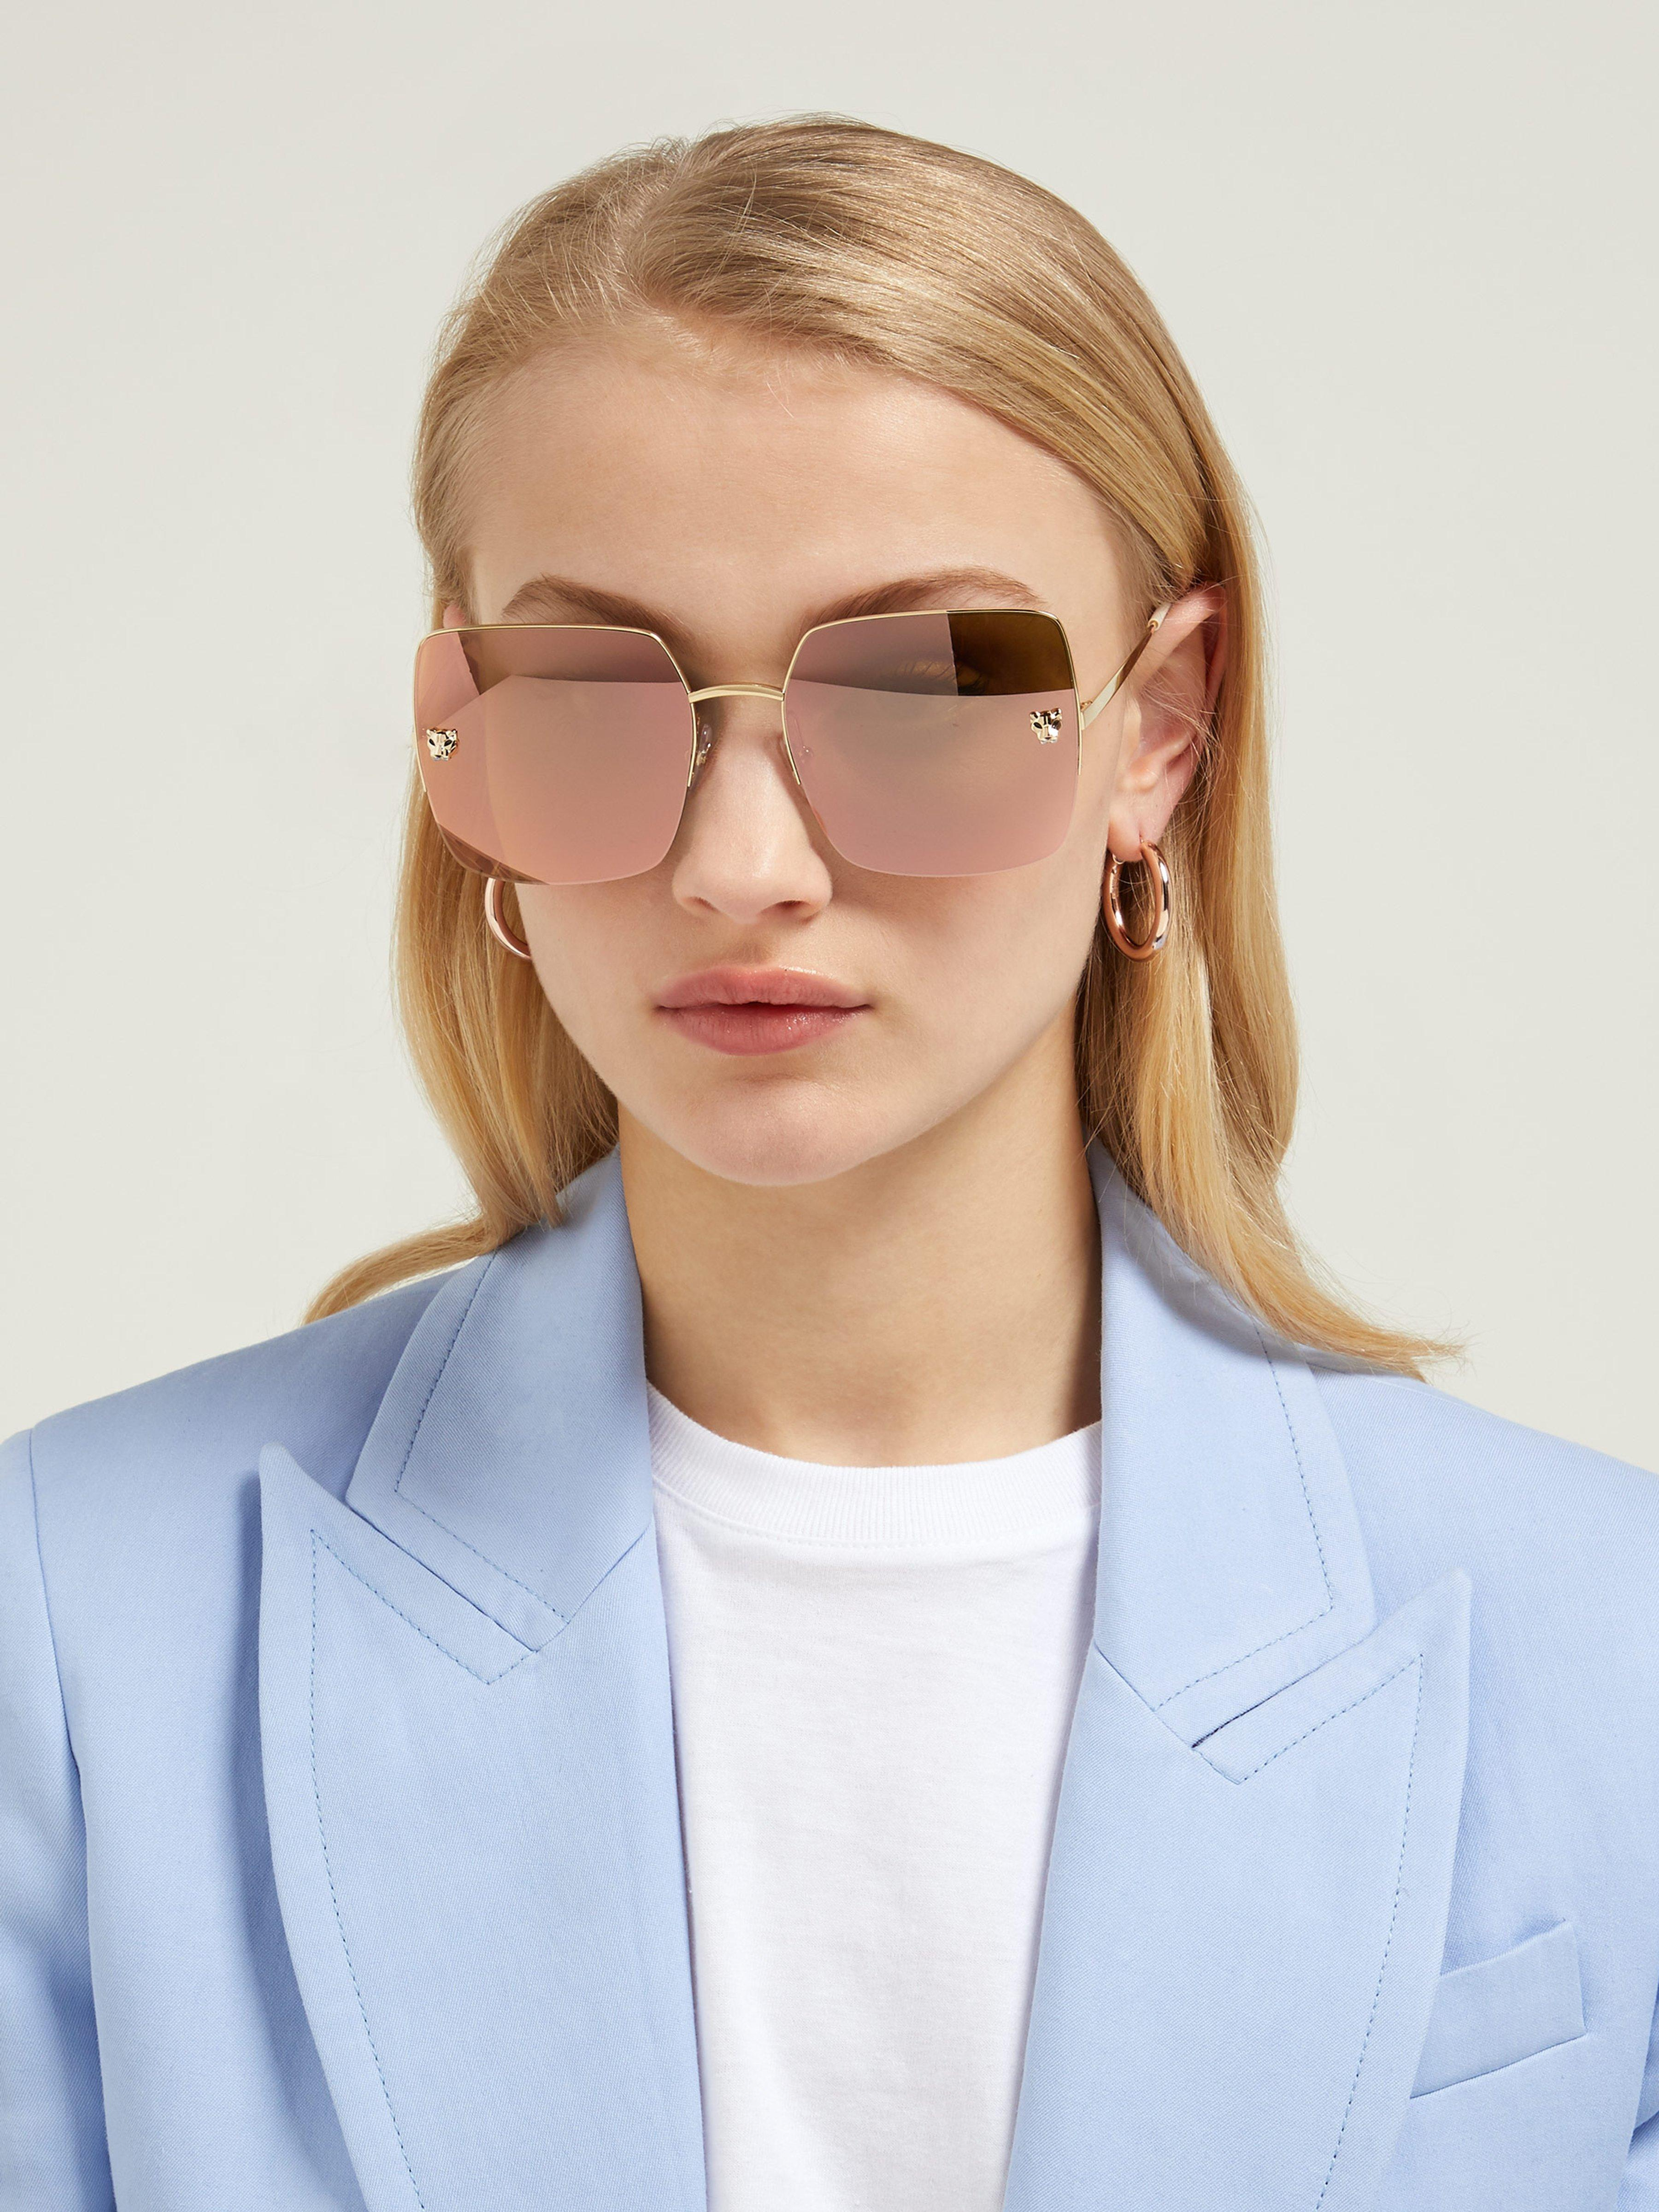 a39ac9b4f6081 Cartier Panthère Mirrored Square Lens Sunglasses in Metallic - Lyst